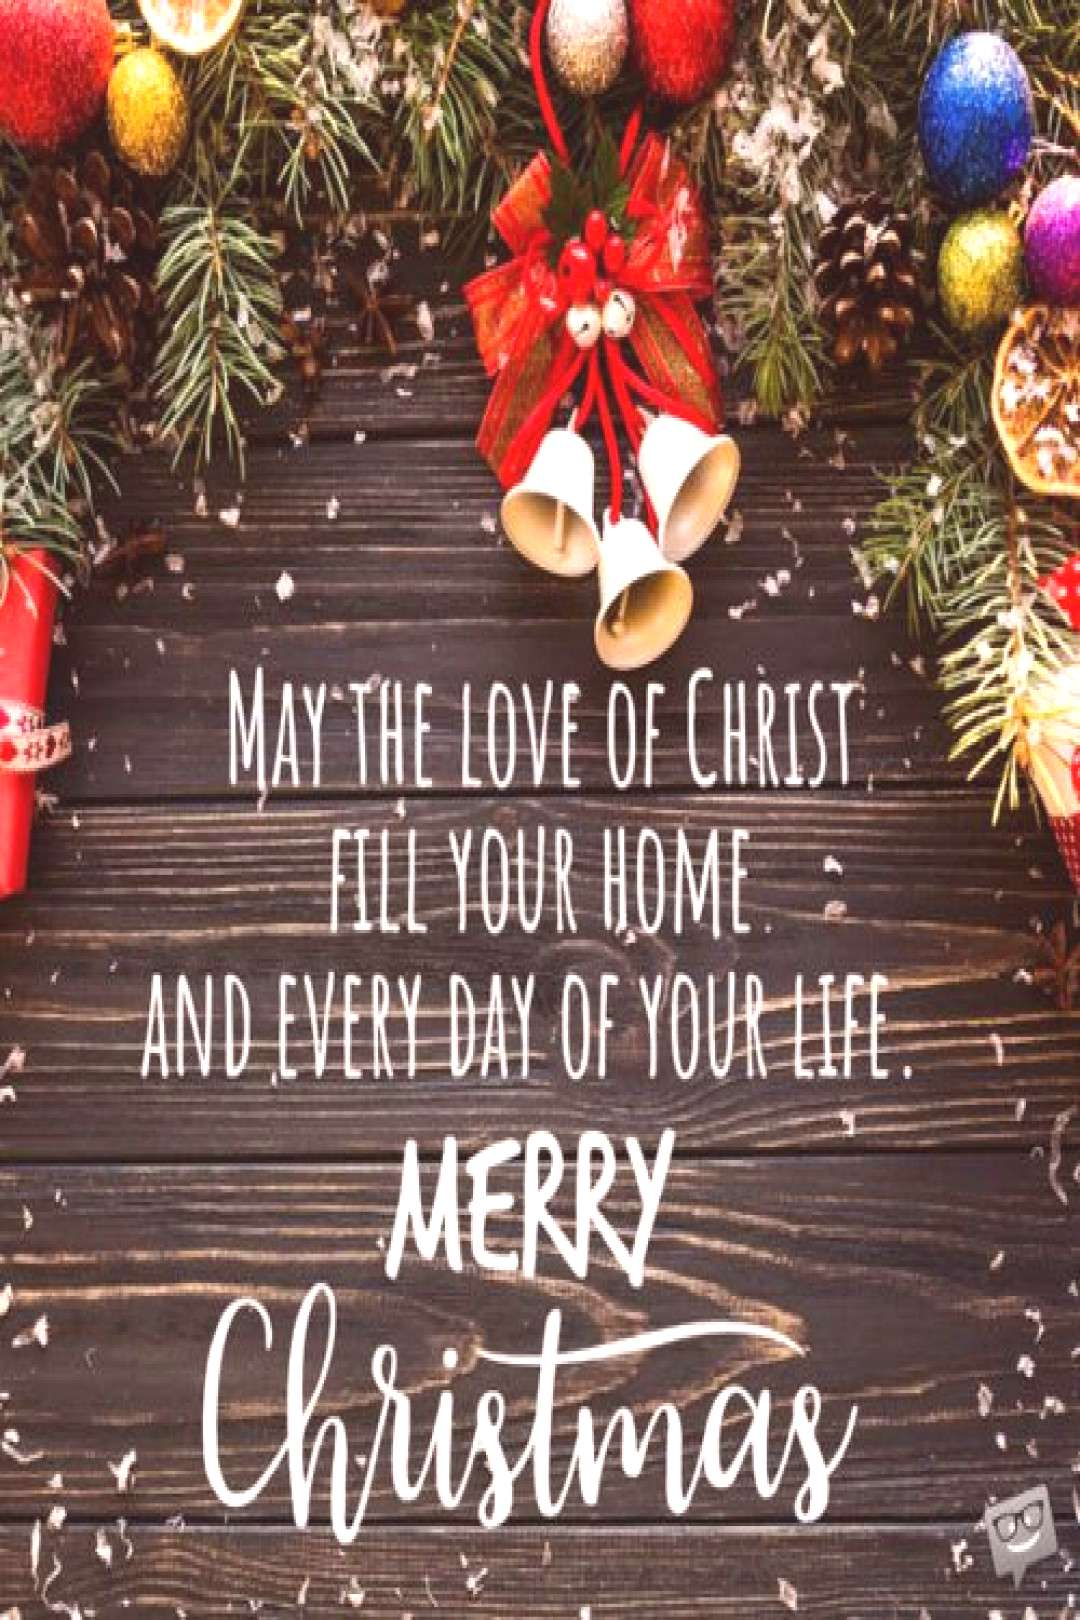 May the love of Christ fill your home and every day of your life. Merry Christmas.